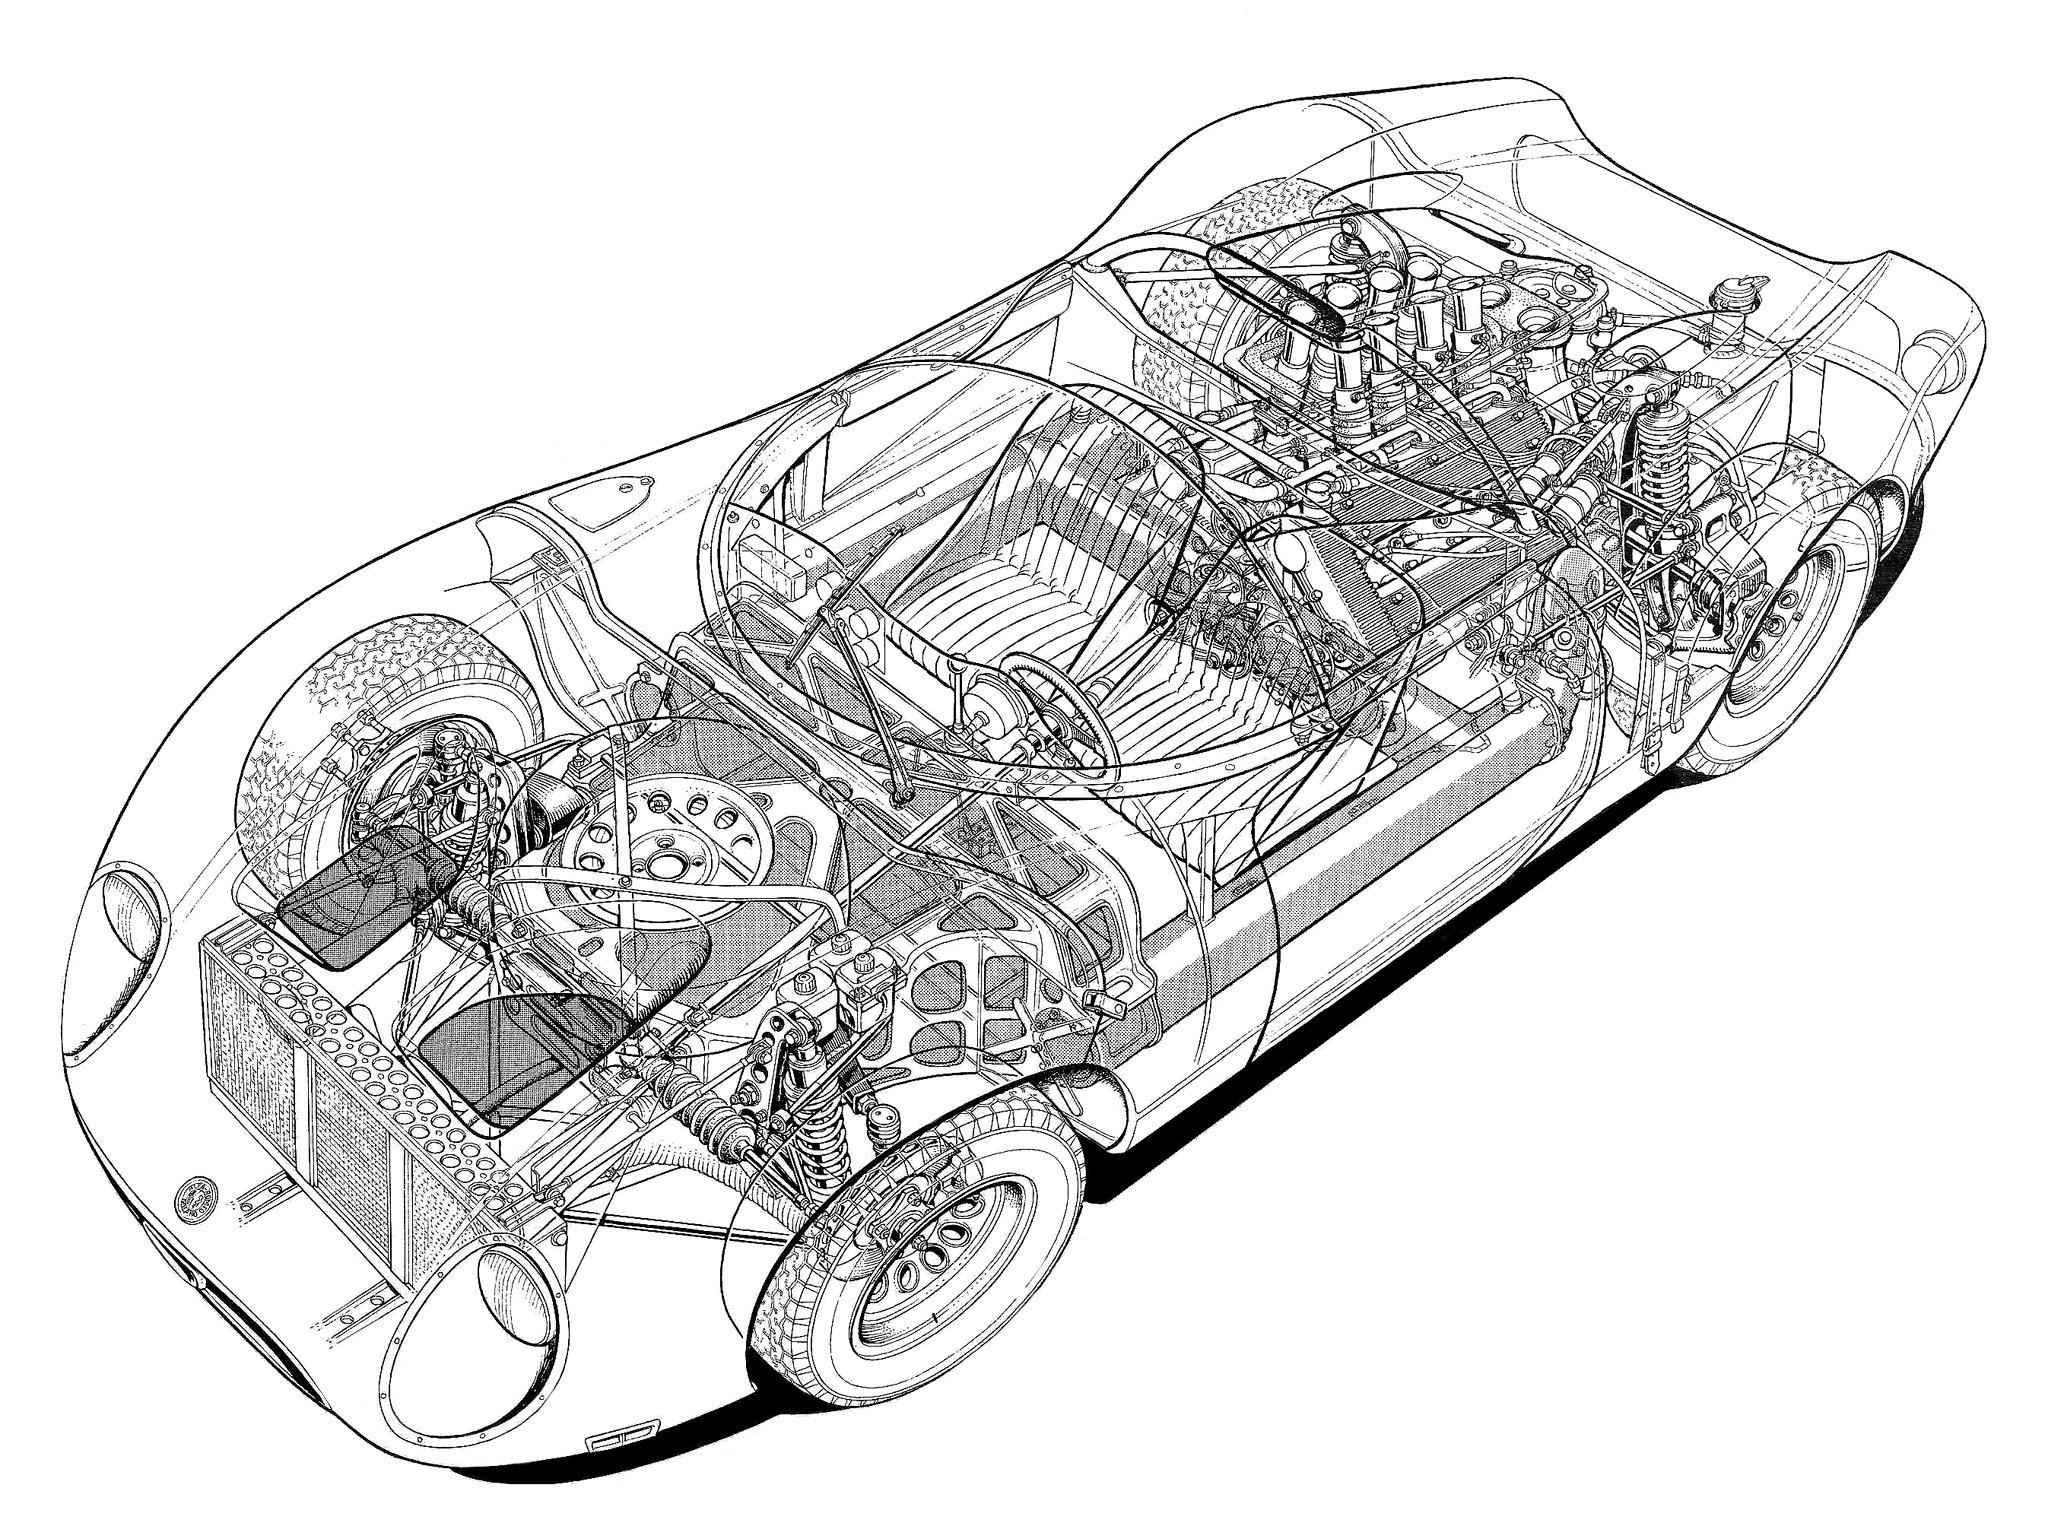 Original Cutaway Drawing Of The Lotus 30 Racing Car By Brian Hatton